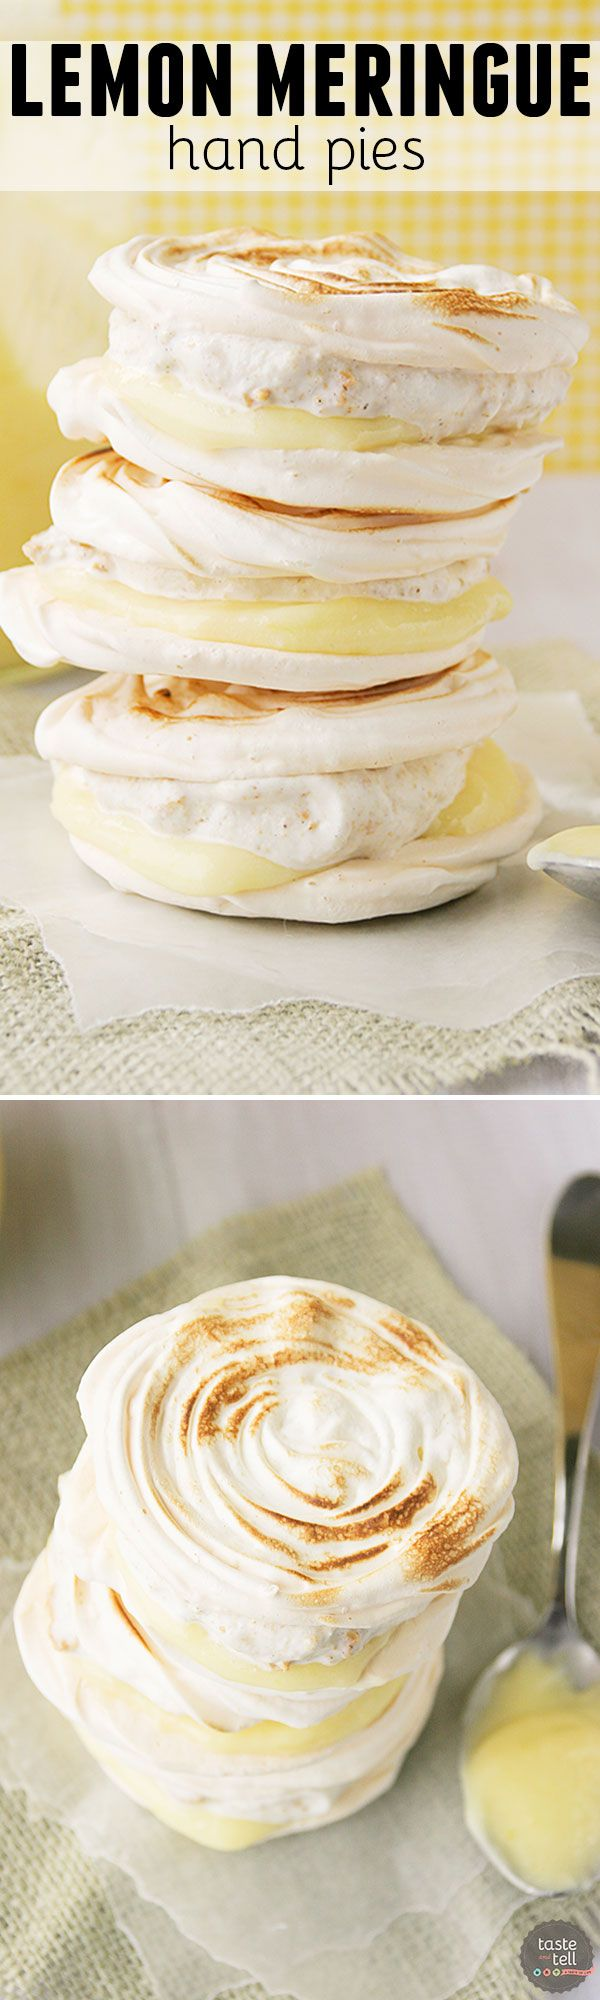 Forget the crust! This take on a lemon meringue pie is perfect for a warm day. Meringue cookies are sandwiched with graham cracker ice cream and lemon curd for a fun hand pie.